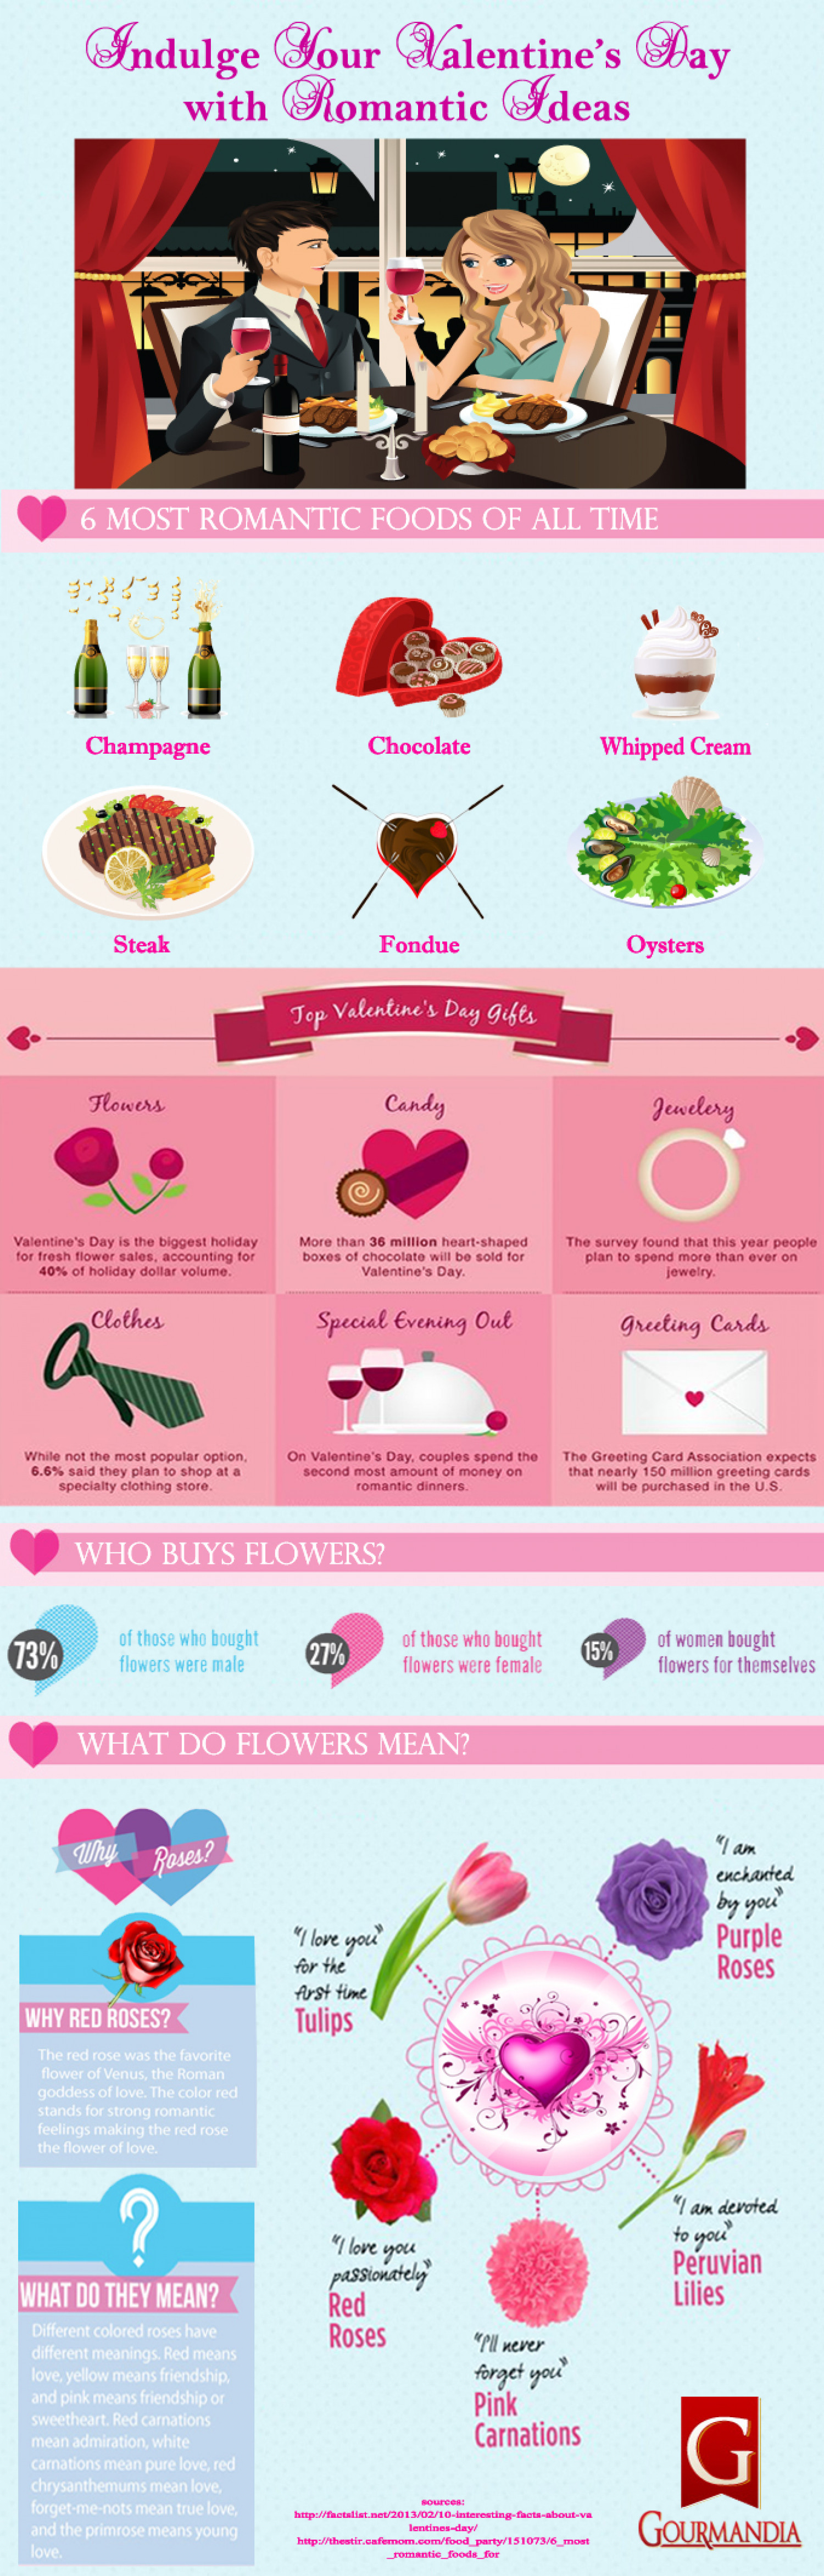 Indulge Your Valentine's Day with Romantic Ideas Infographic